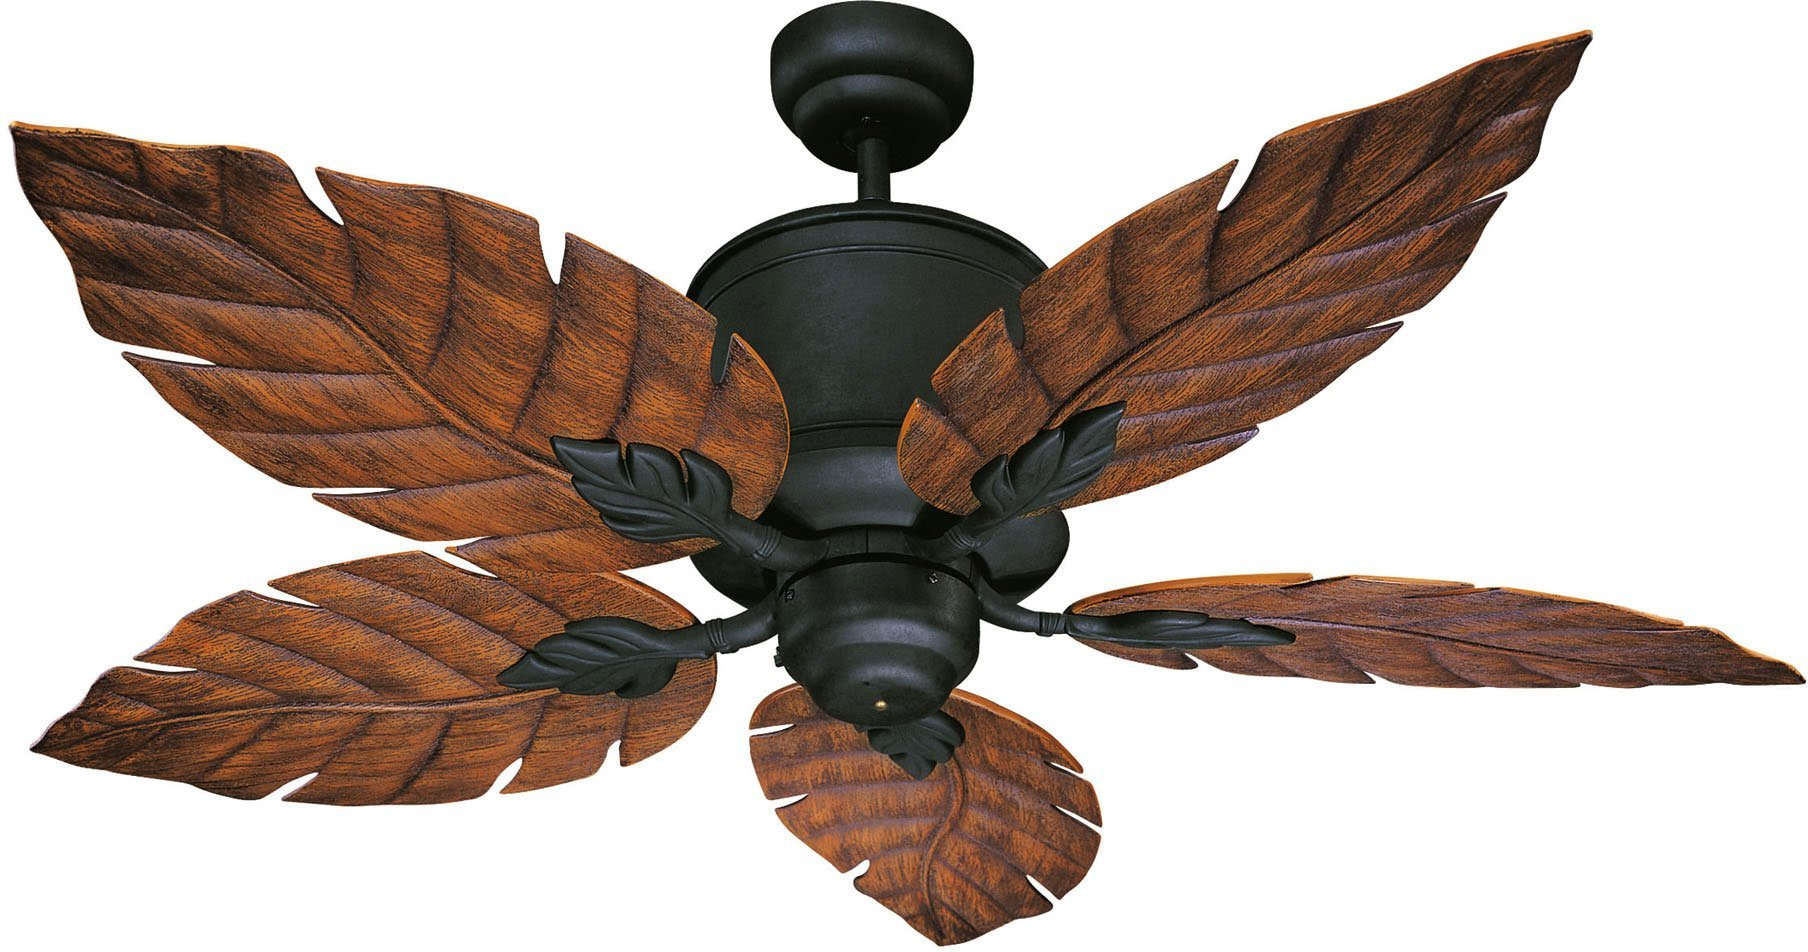 10 benefits of Leaf ceiling fan blades.